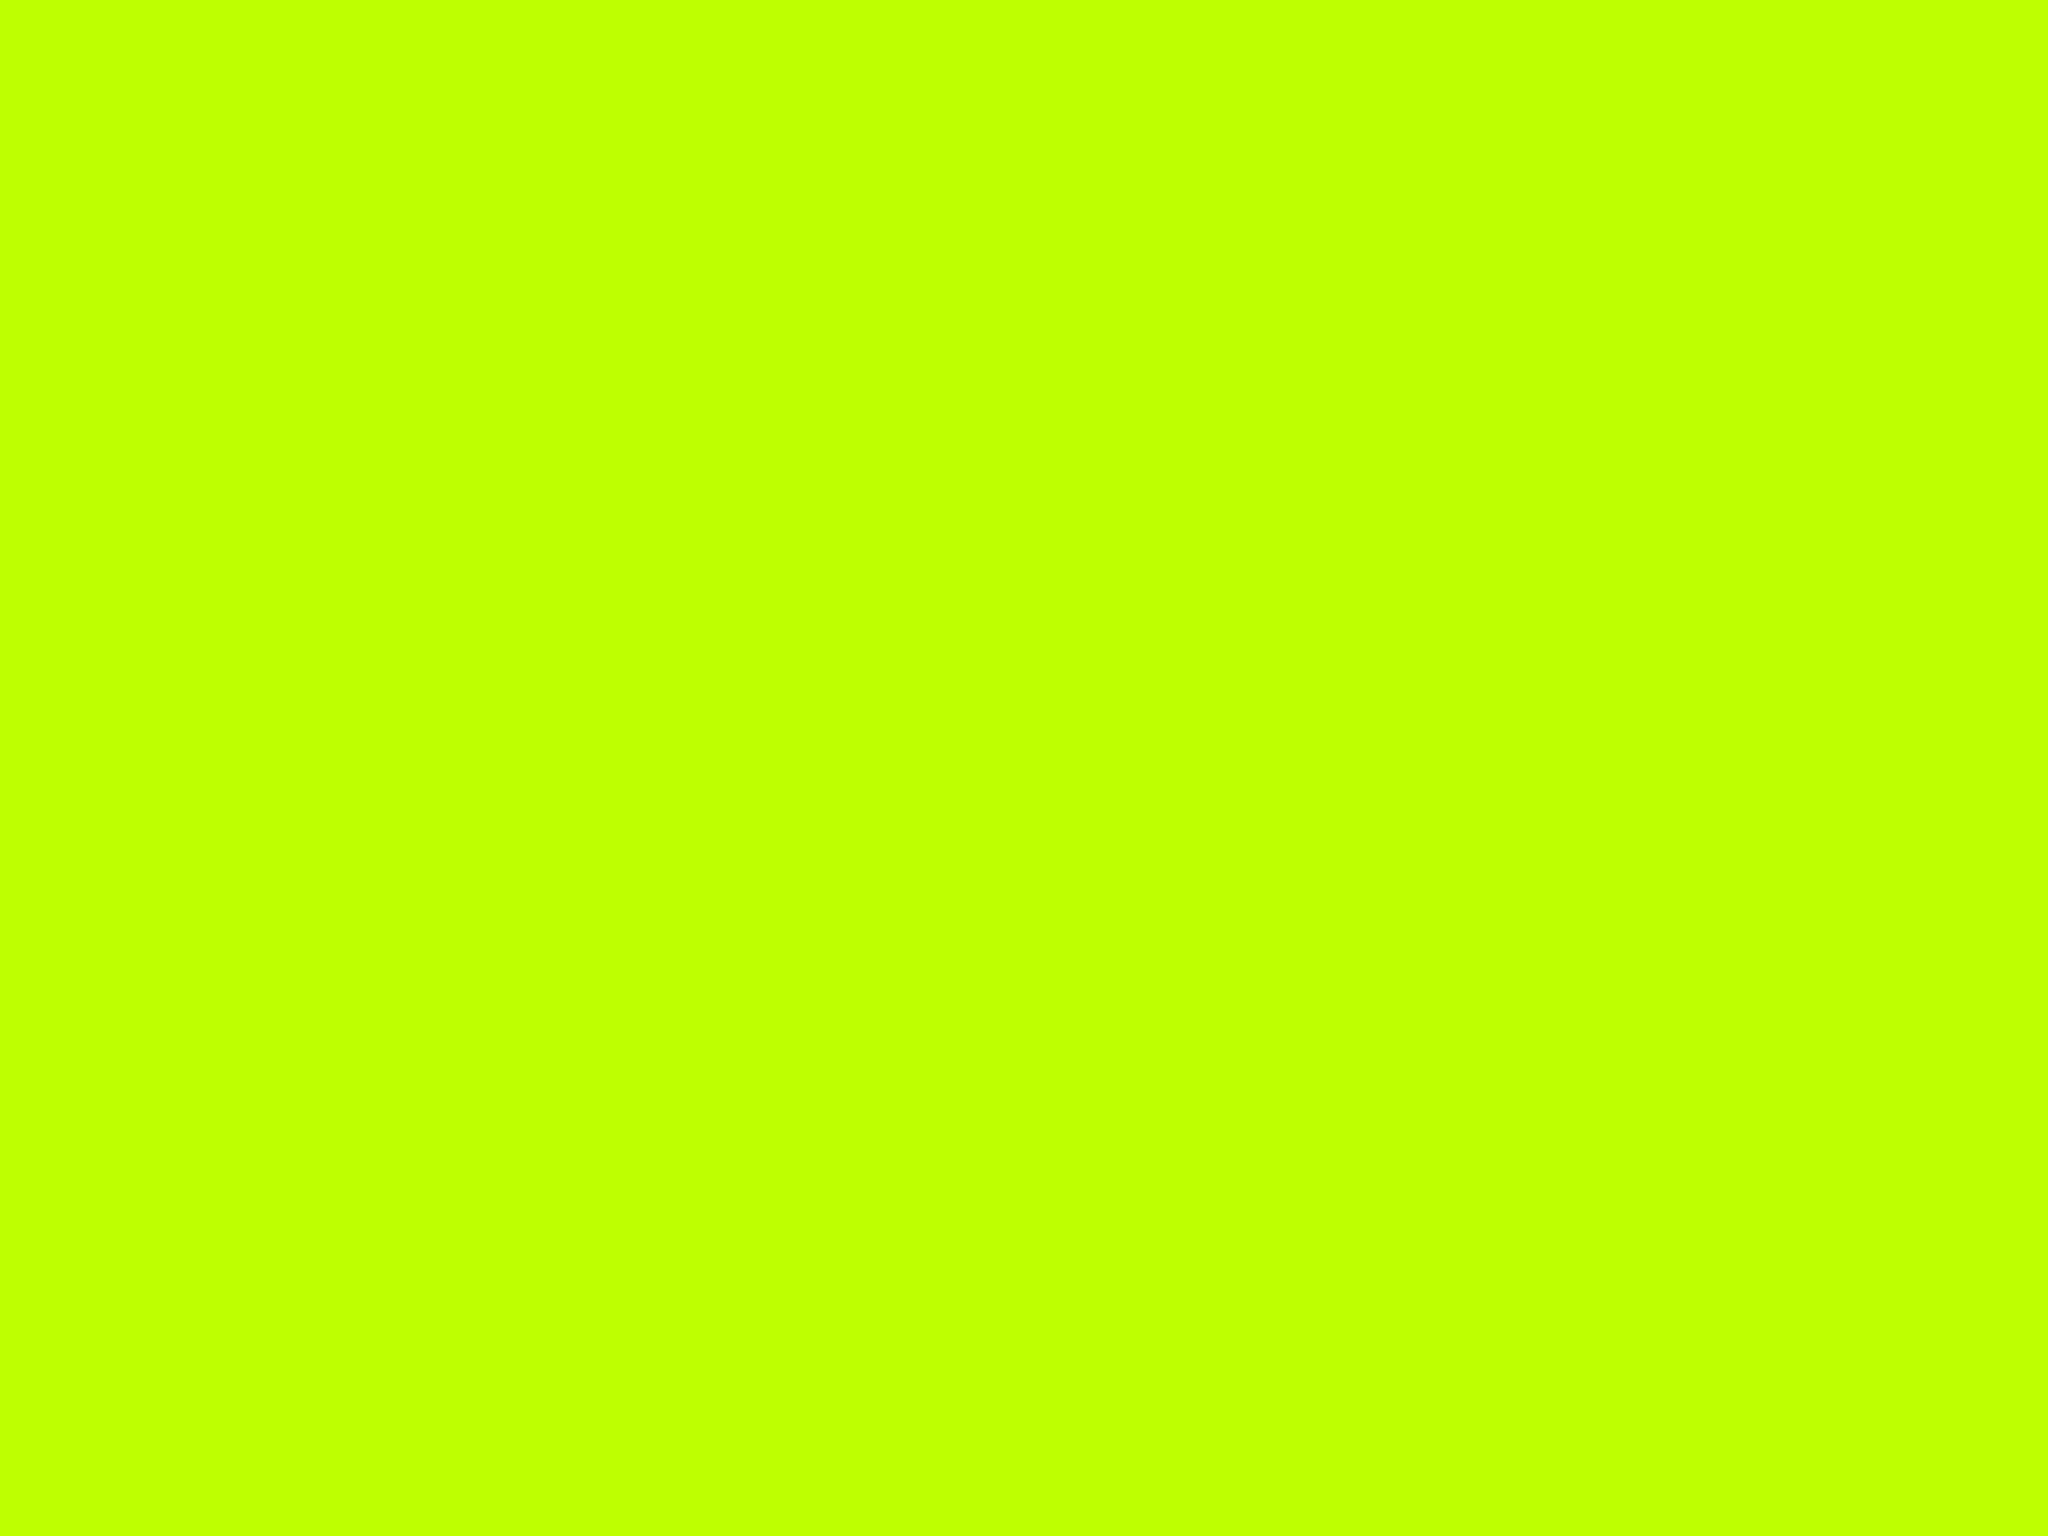 lime color background - photo #19